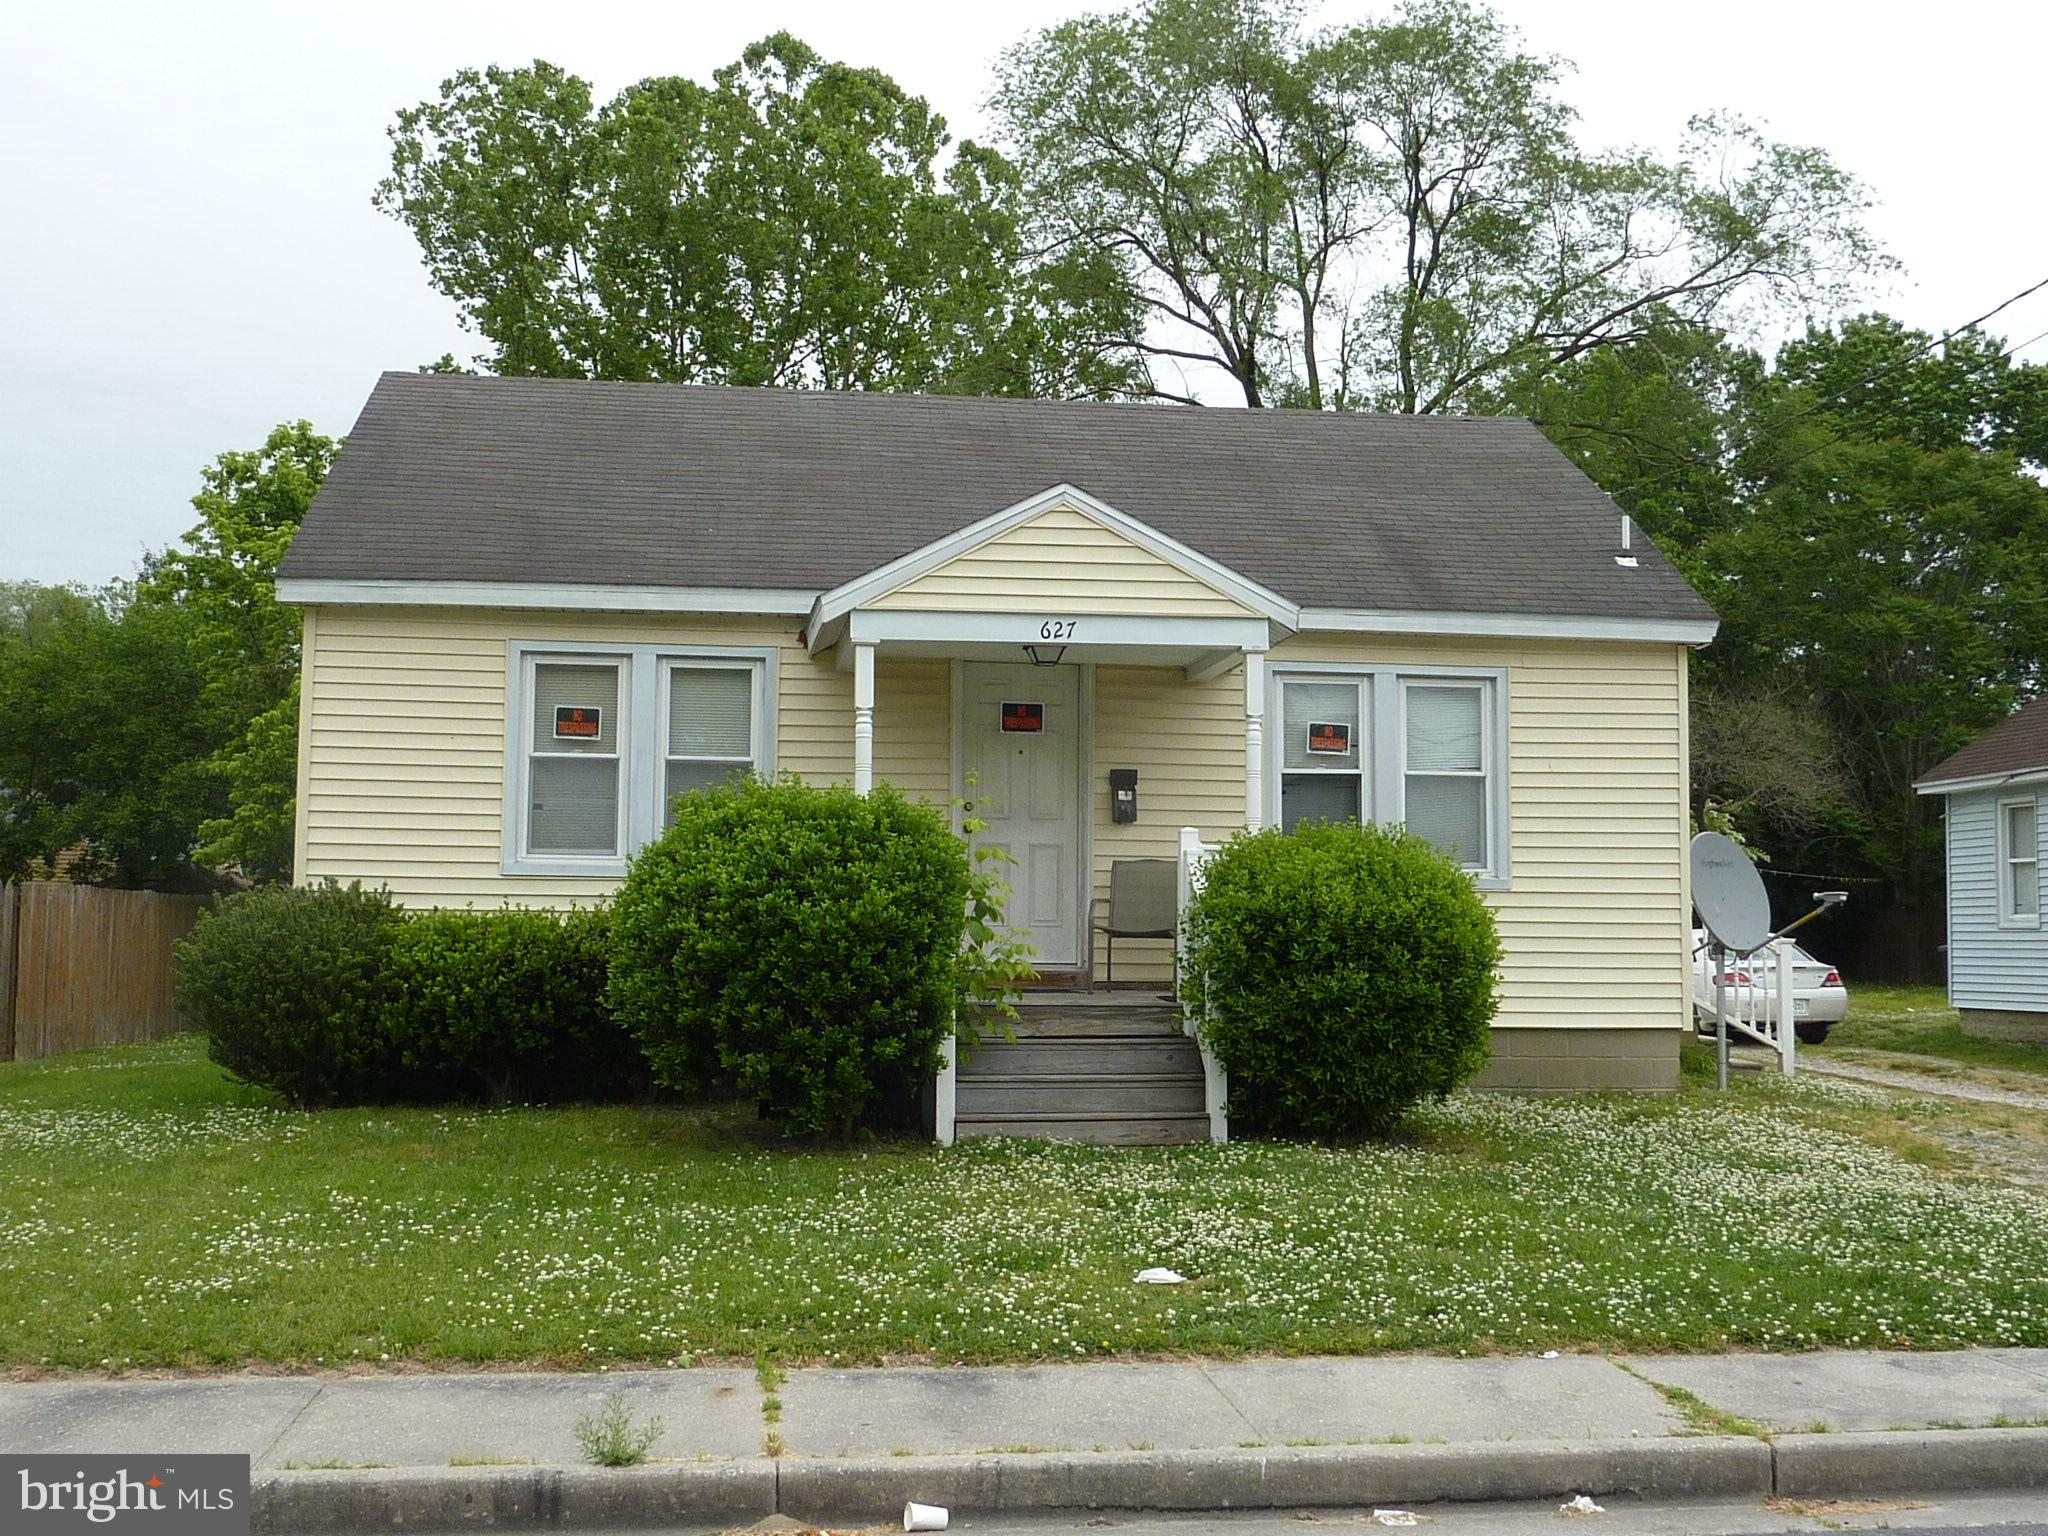 Cozy 2 bedroom, 1 bath rental in Doverdale neighborhood.  Low maintenance vinyl siding and vinyl clad windows.  Kitchen remodeled in 2014.  Large rear yard with storage shed.  MDE Lead Free inspection certificate.  Long term tenant in new lease at 900/month plus all utilities.  Lease expires 7/31/22. To respect privacy of tenants, 48 hours notice required.